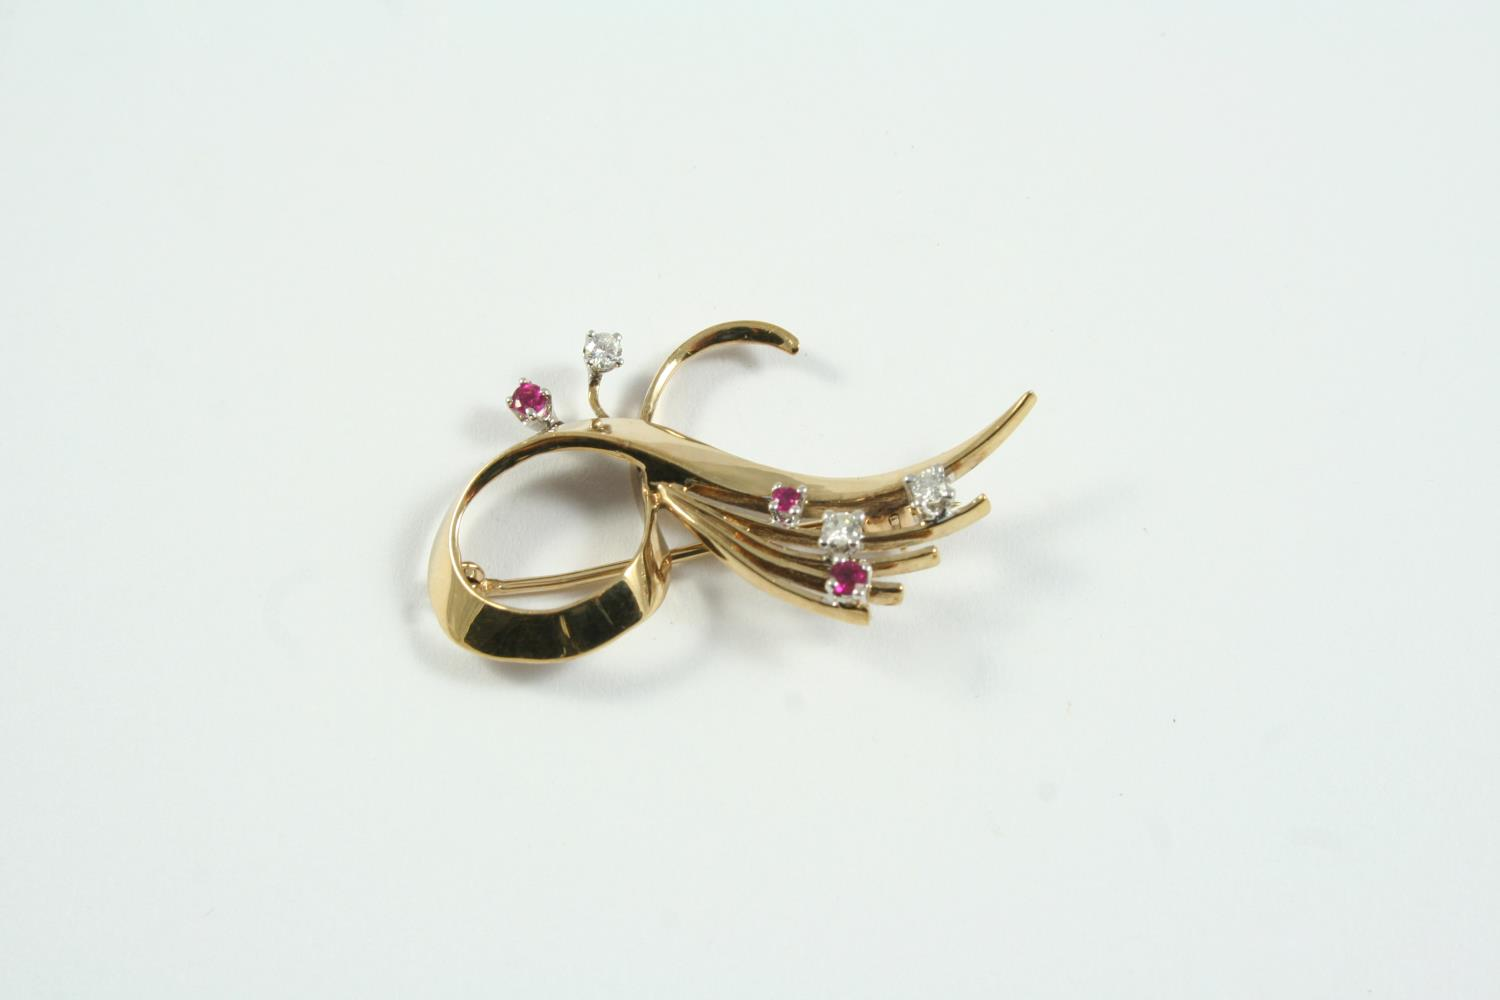 A GOLD, RUBY AND DIAMOND BROOCH the yellow gold scrolling mount is set with circular-cut rubies